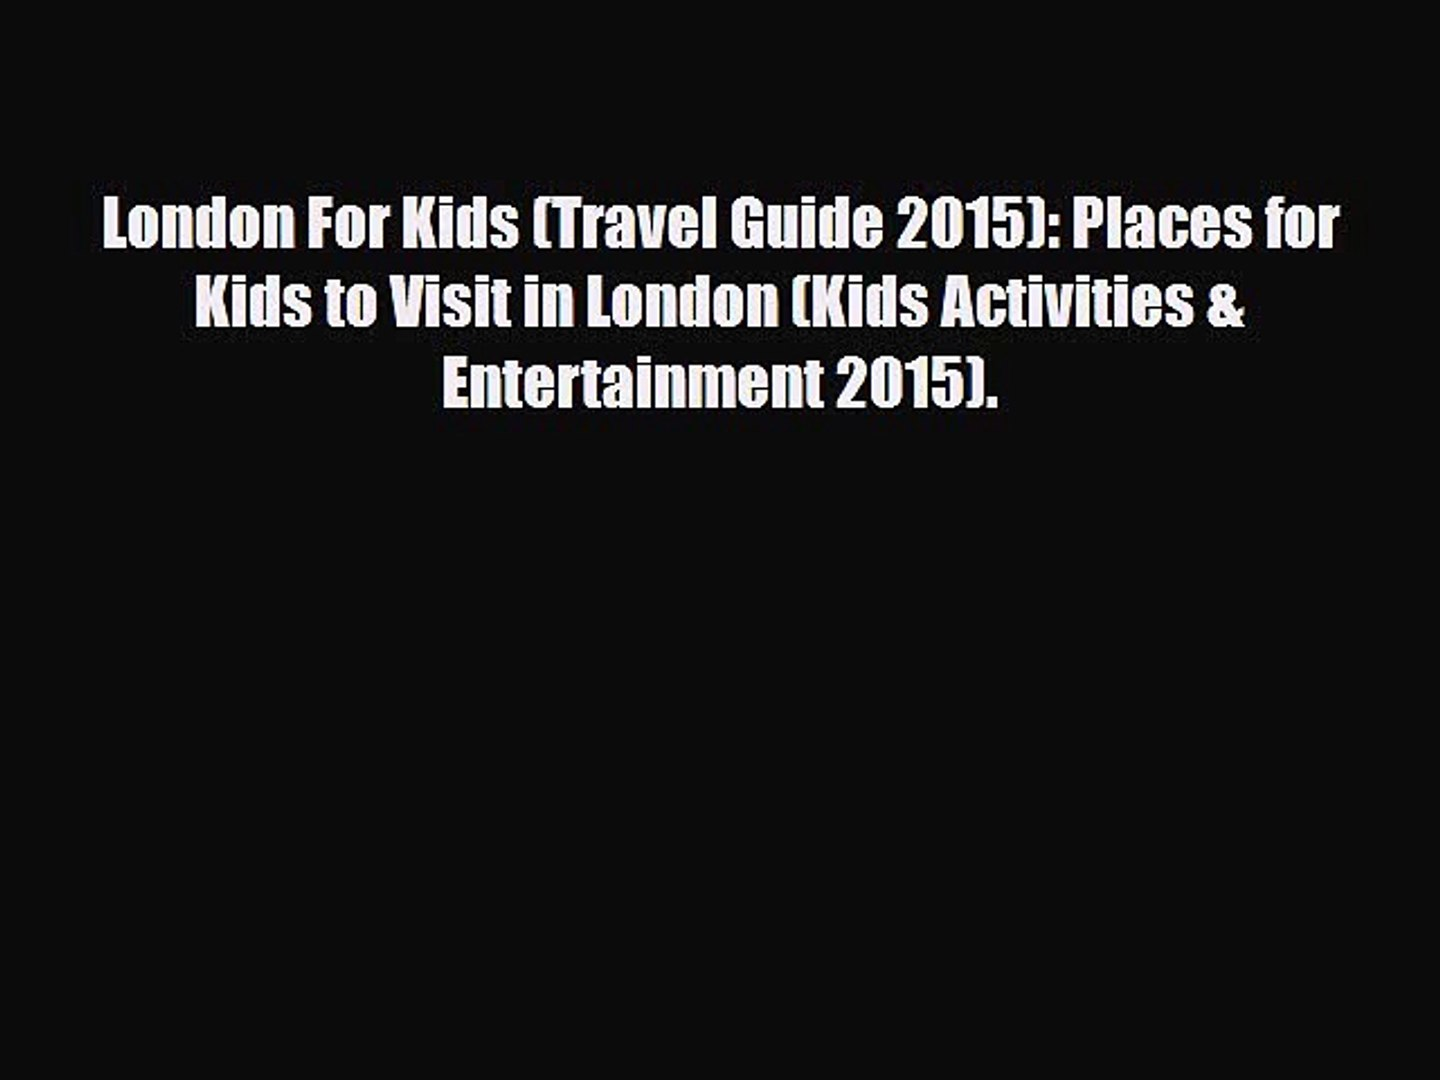 Download London For Kids (Travel Guide 2015): Places for Kids to Visit in London (Kids Activities